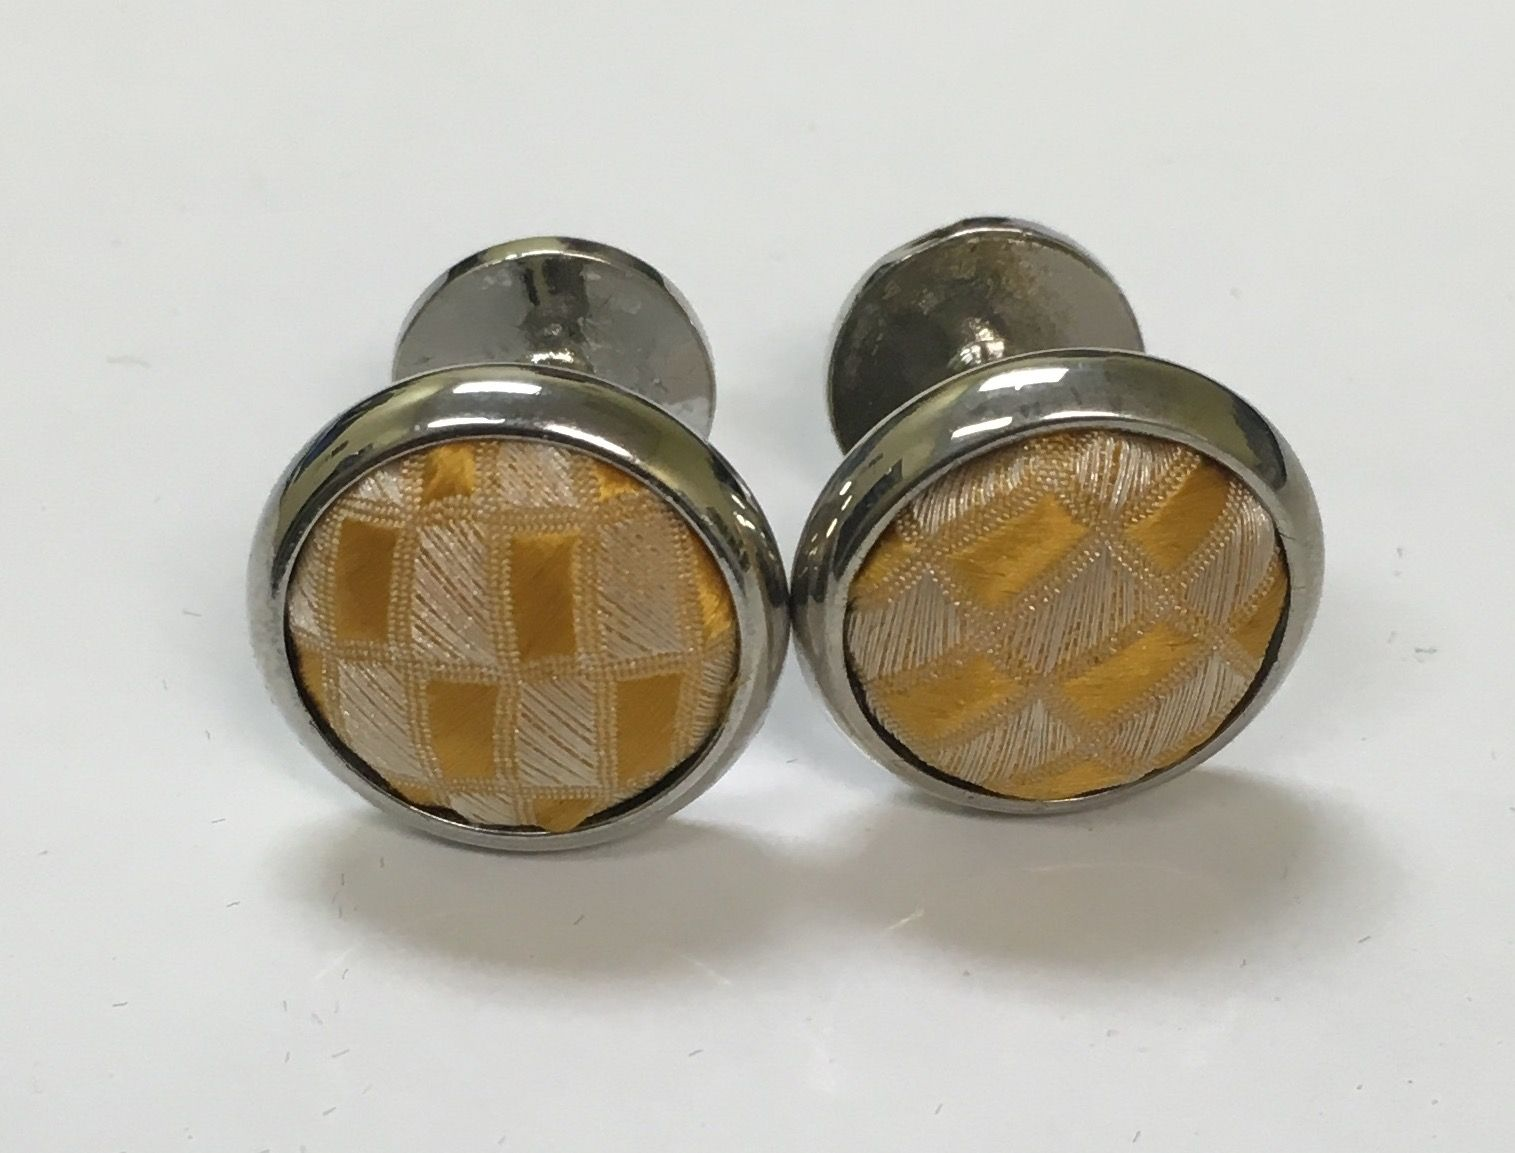 2 Pc. Exquisite Fabric Cufflinks - Gold